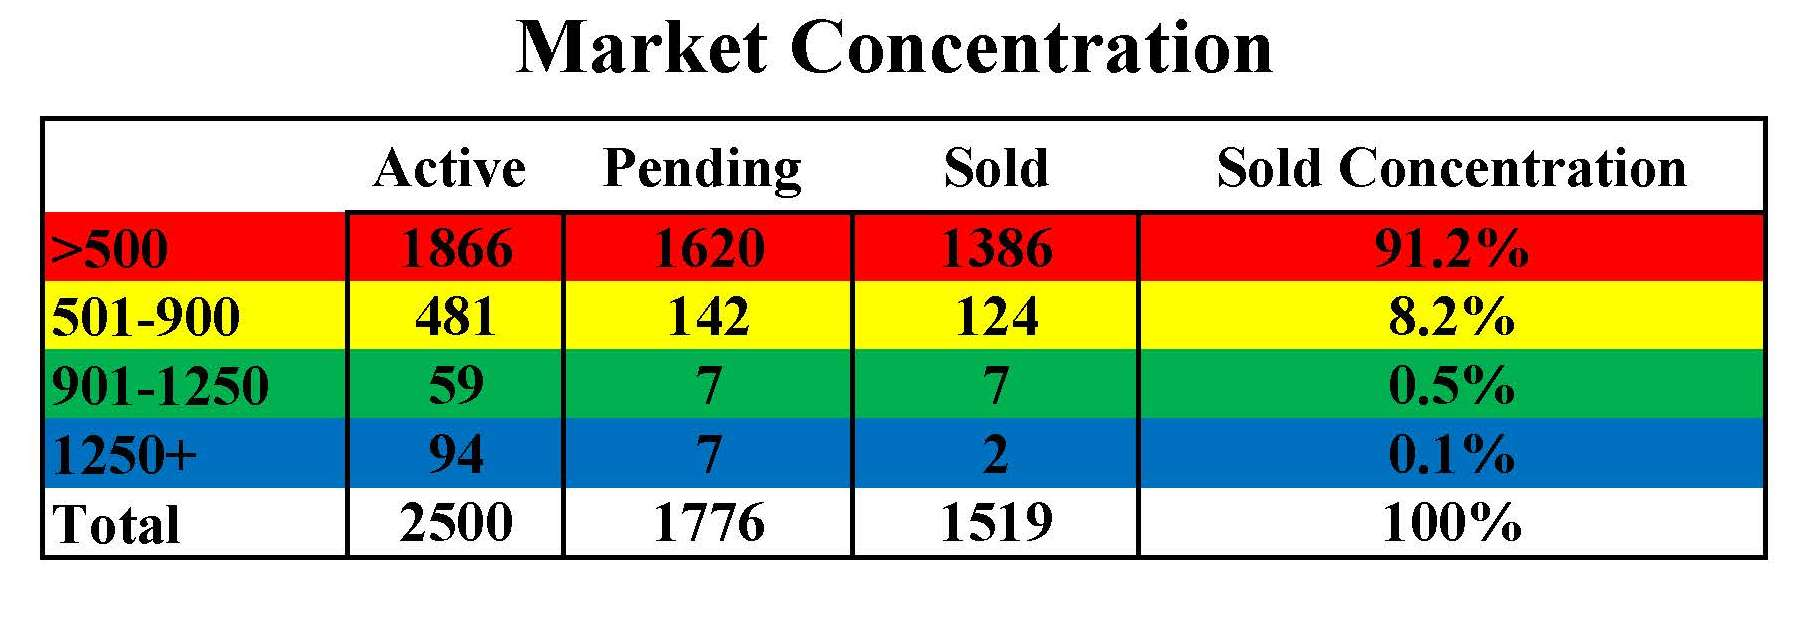 market concentration chart